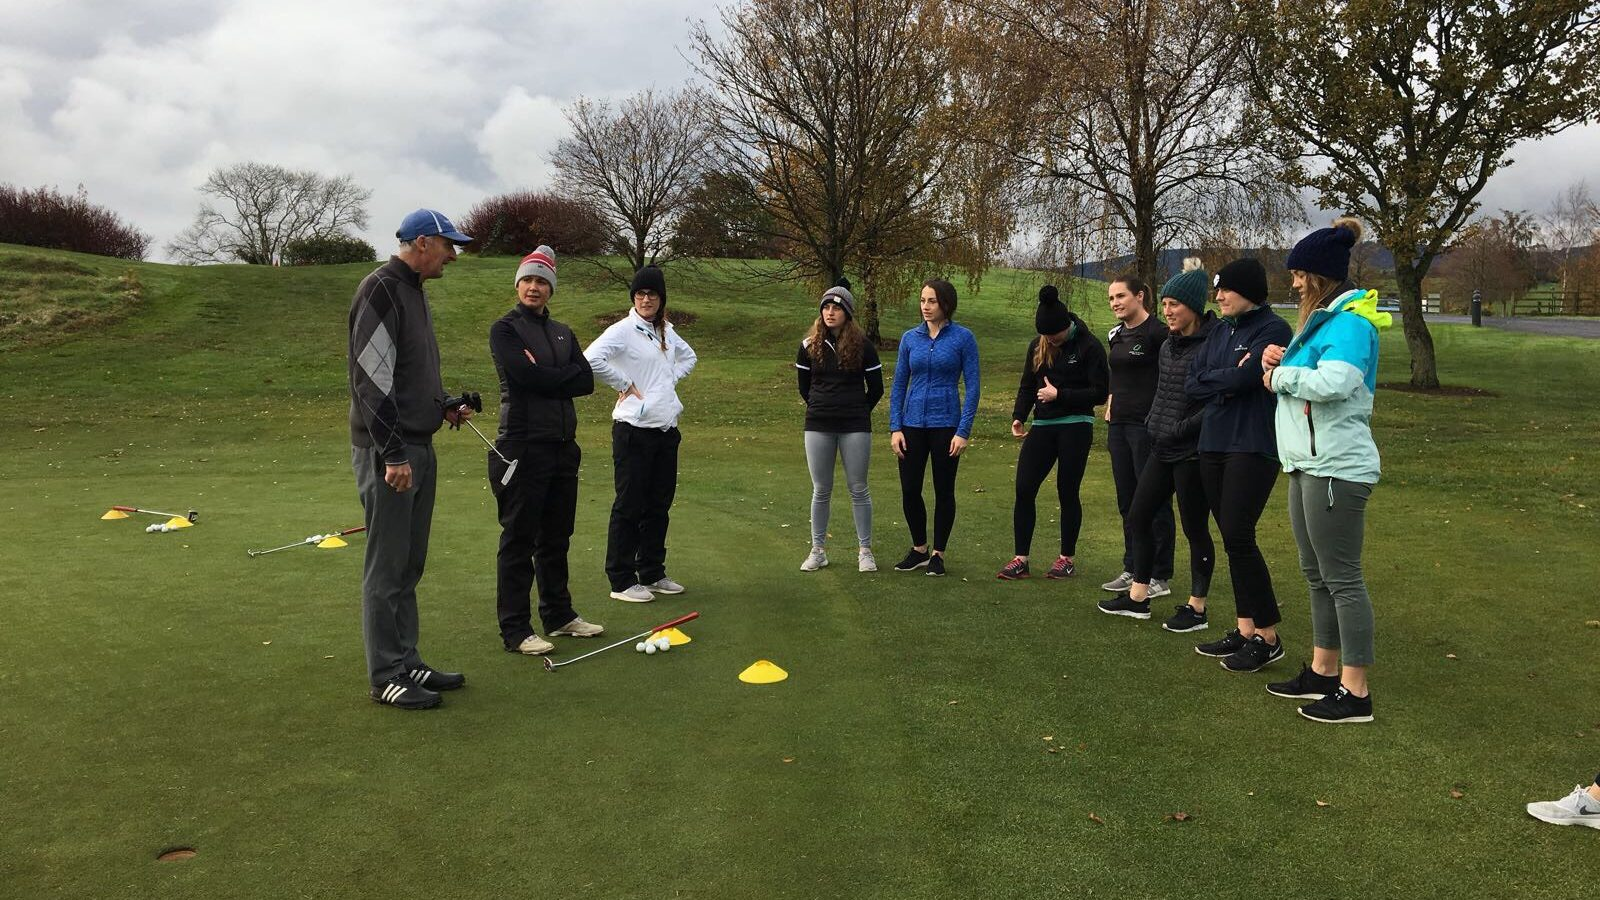 DRUIDS GLEN GOLF CLINIC